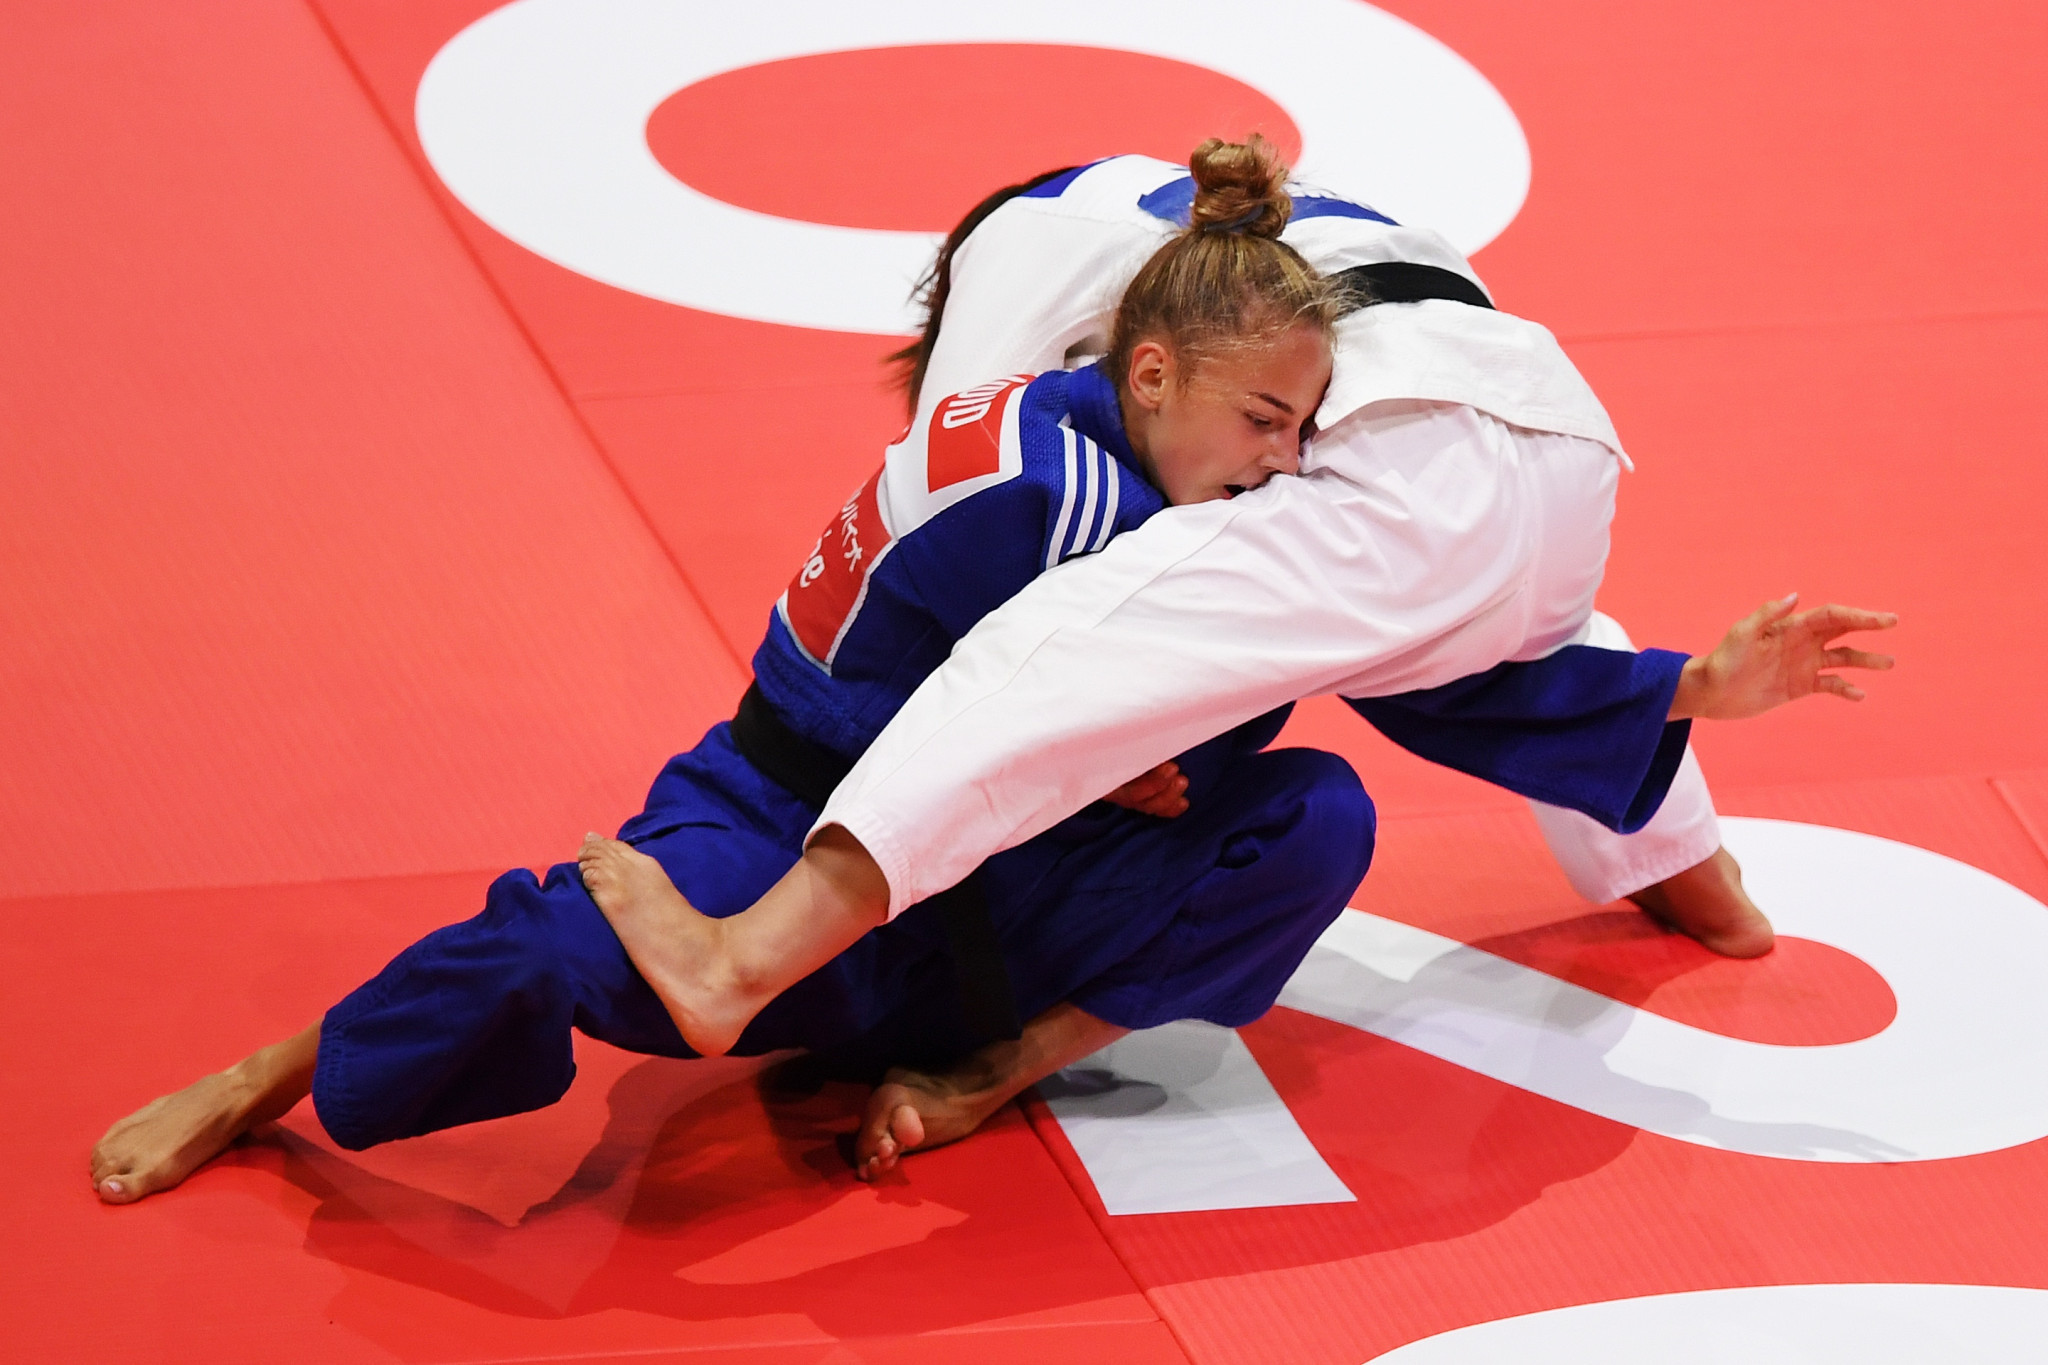 Daria Bilodid claimed the first gold medal of the 2019 IJF World Championships ©Getty Images